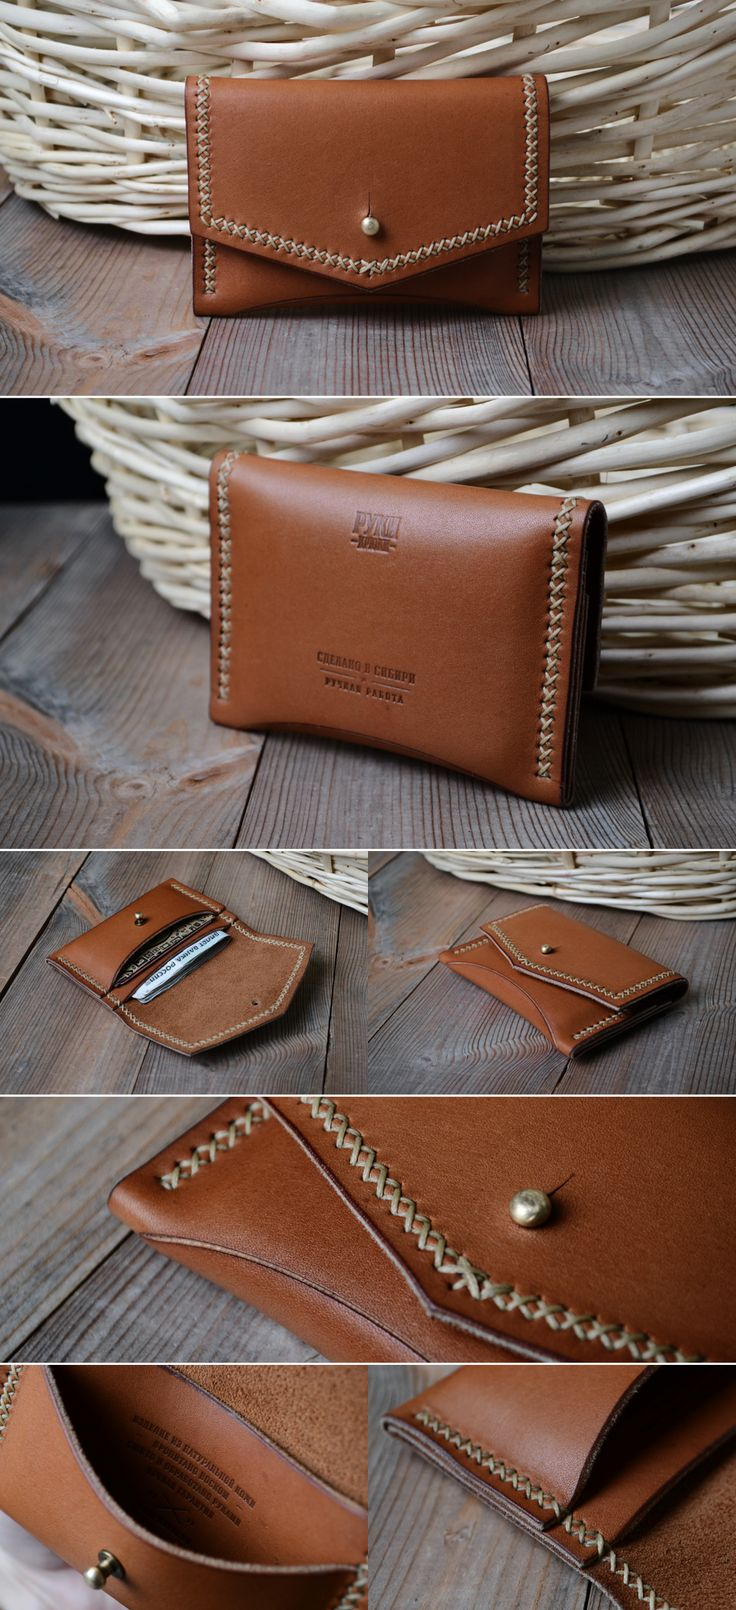 359 Best Diy Leather Images On Pinterest Leather Craft Clutch